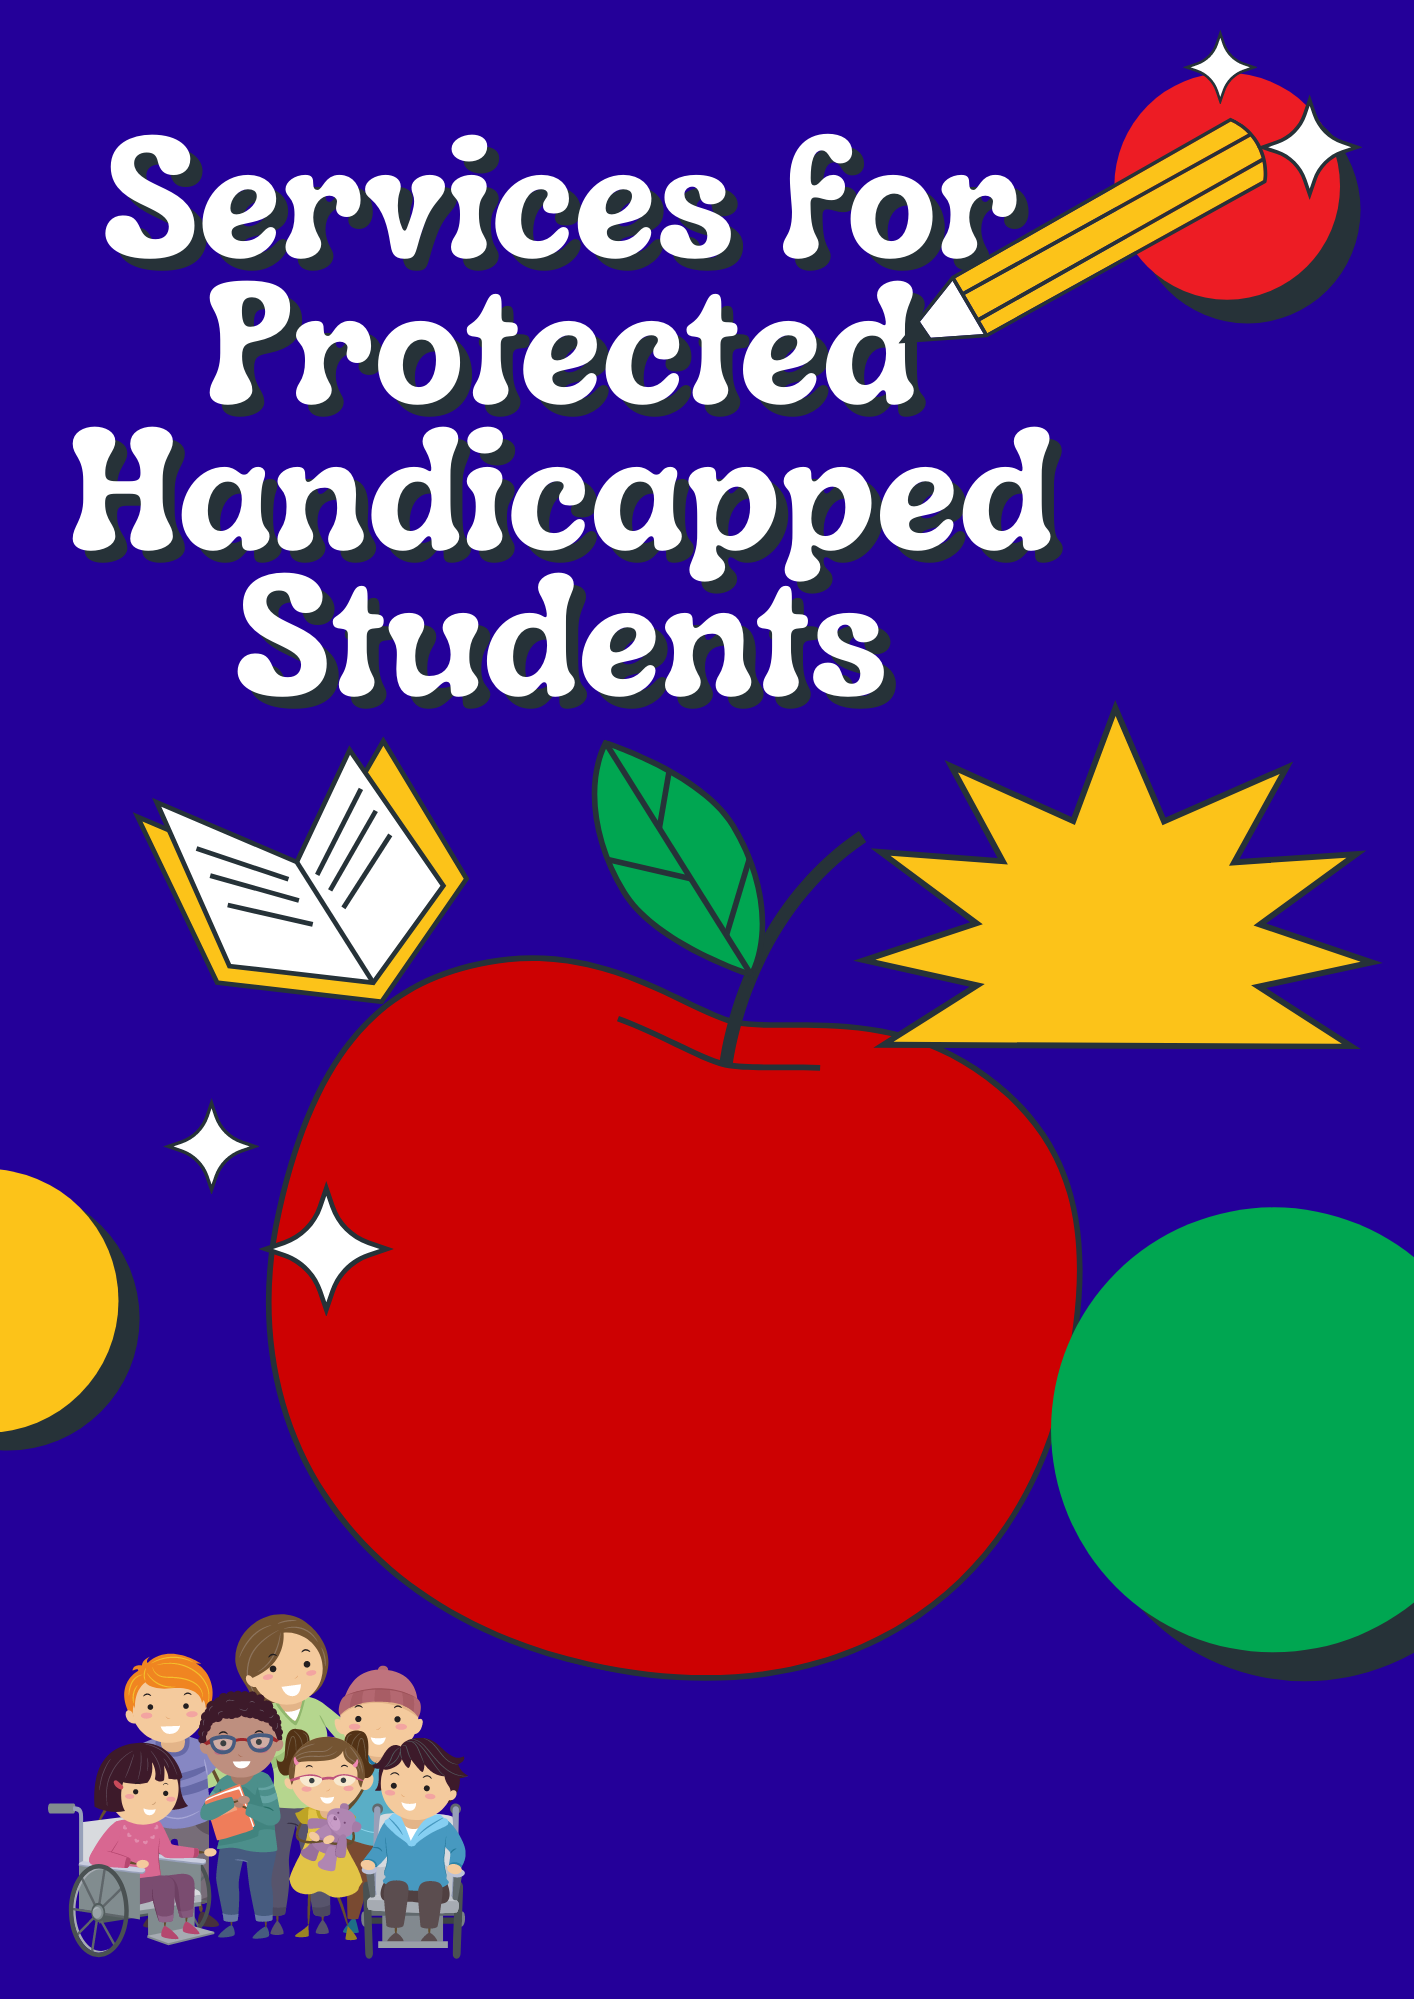 Services for Protected Handicapped Students